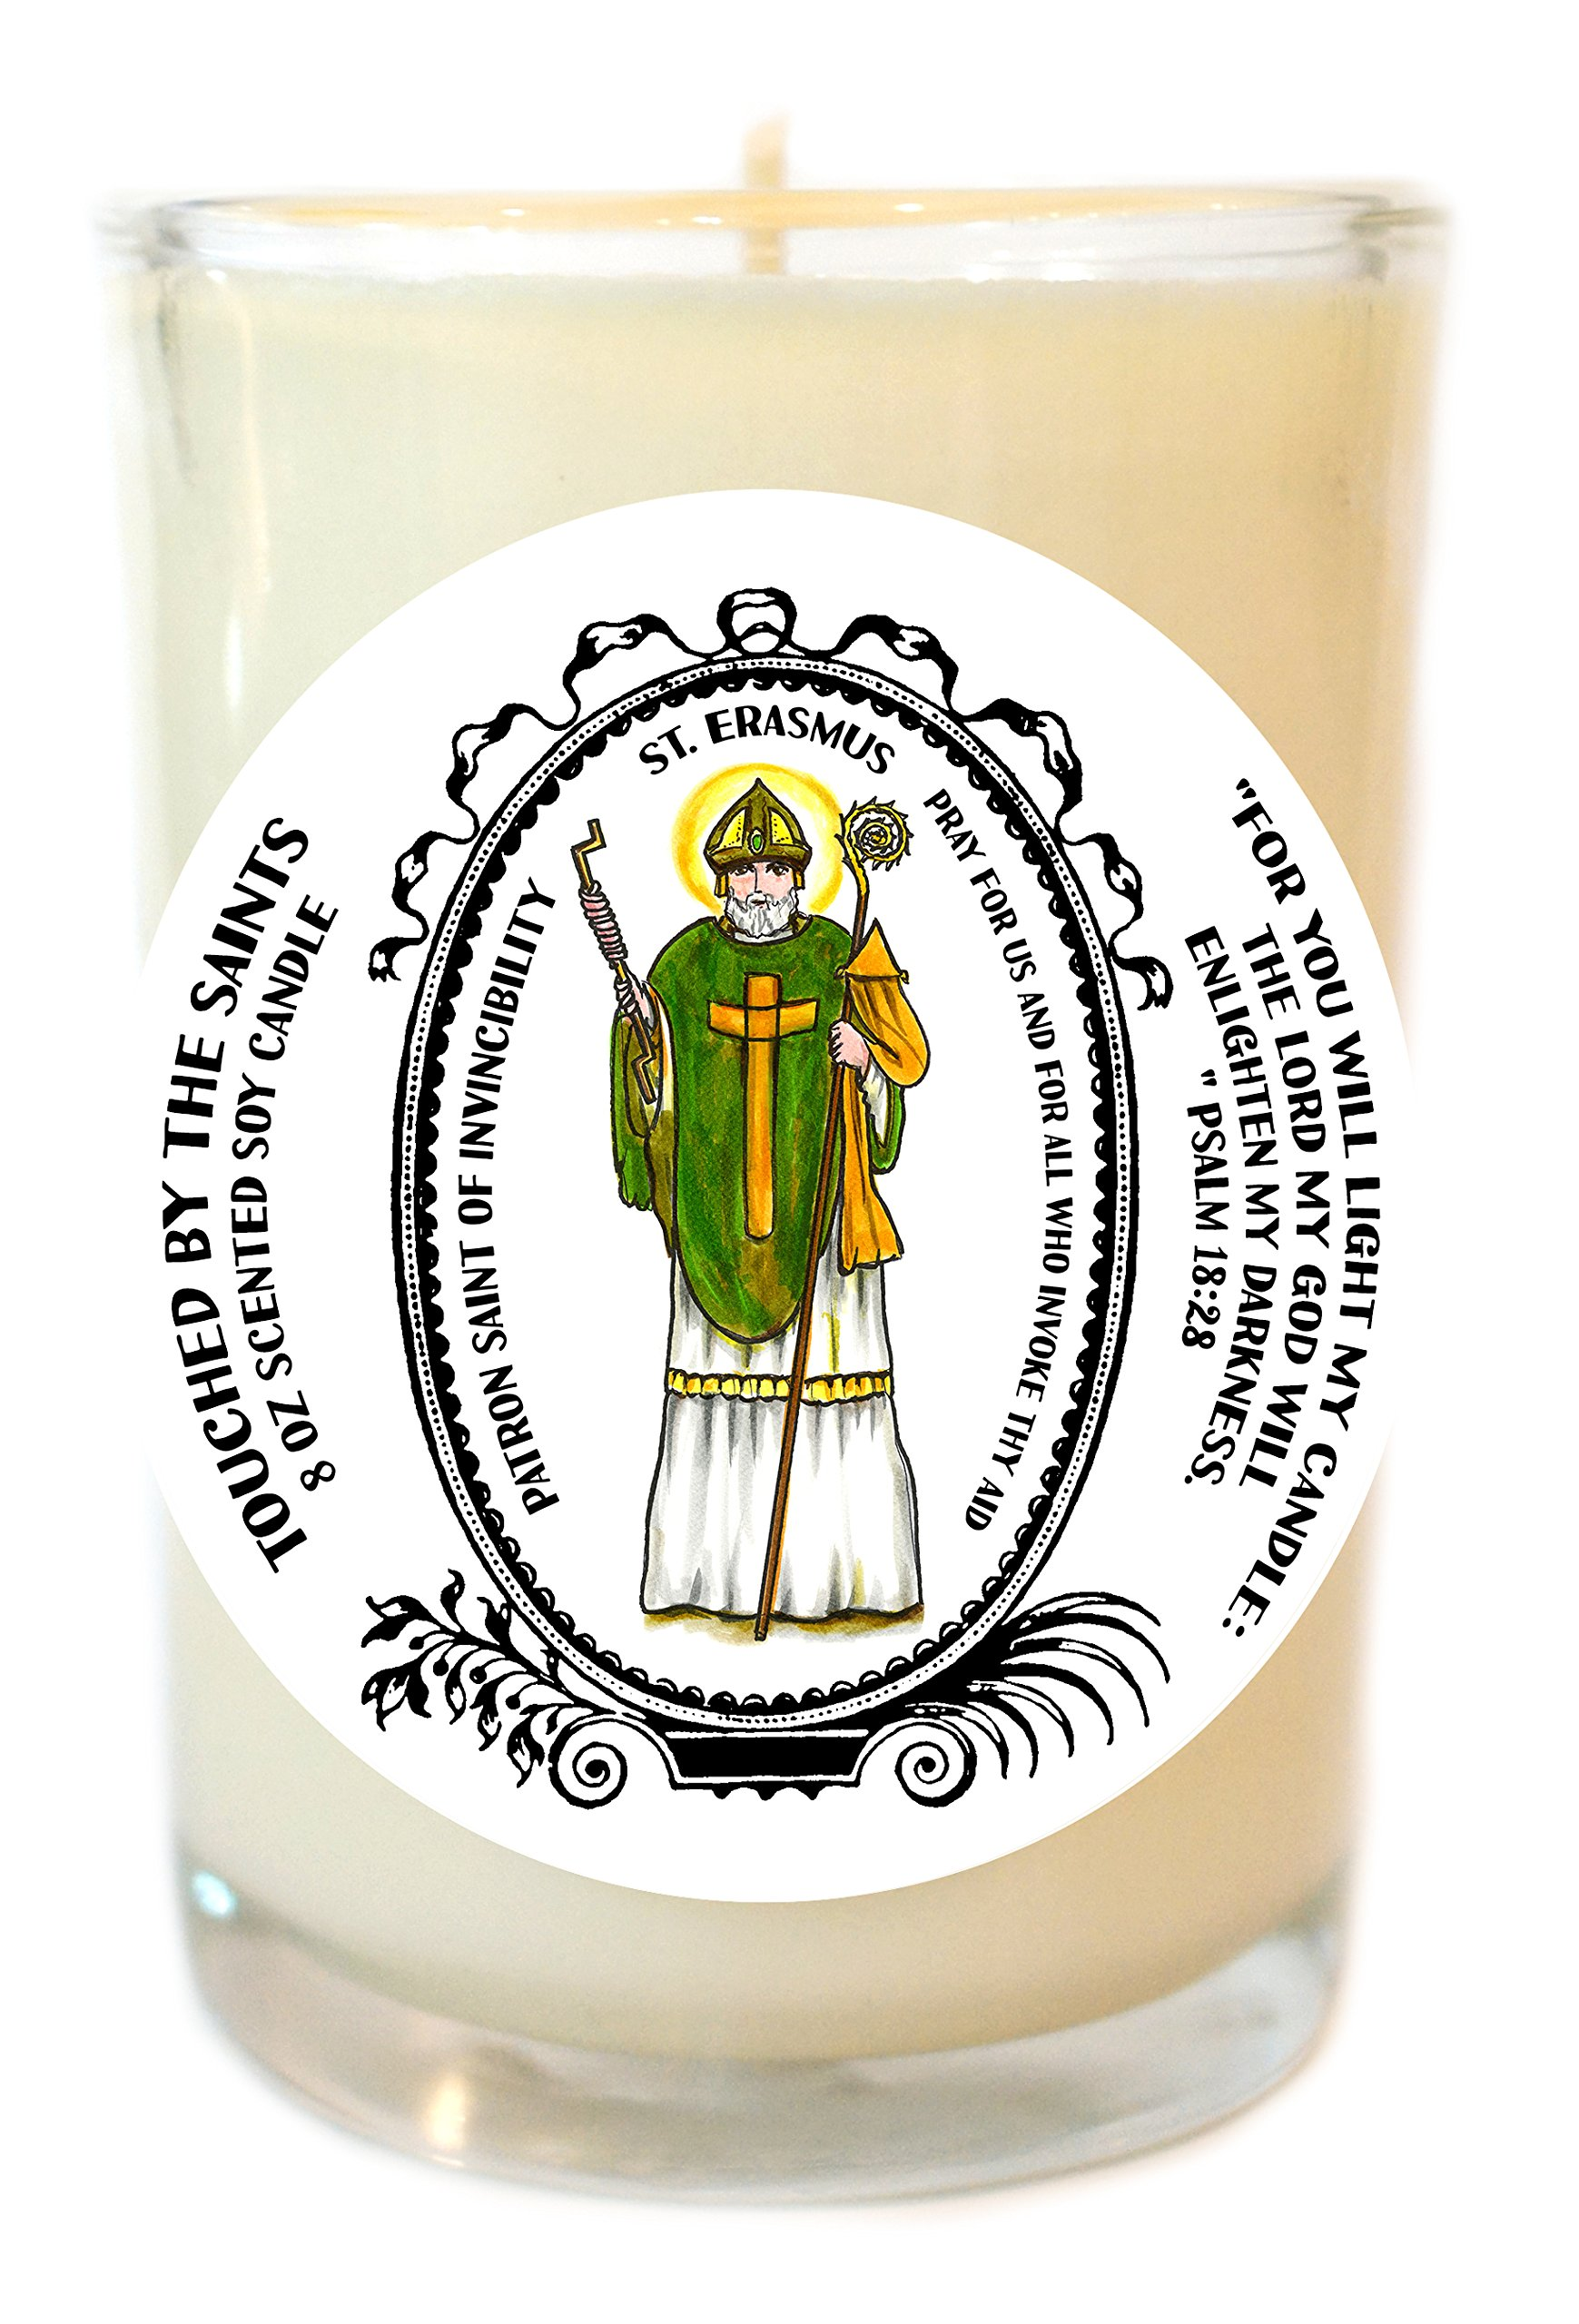 Saint Erasmus Patronof Invincibility 8 Oz Scented Soy Glass Prayer Candle